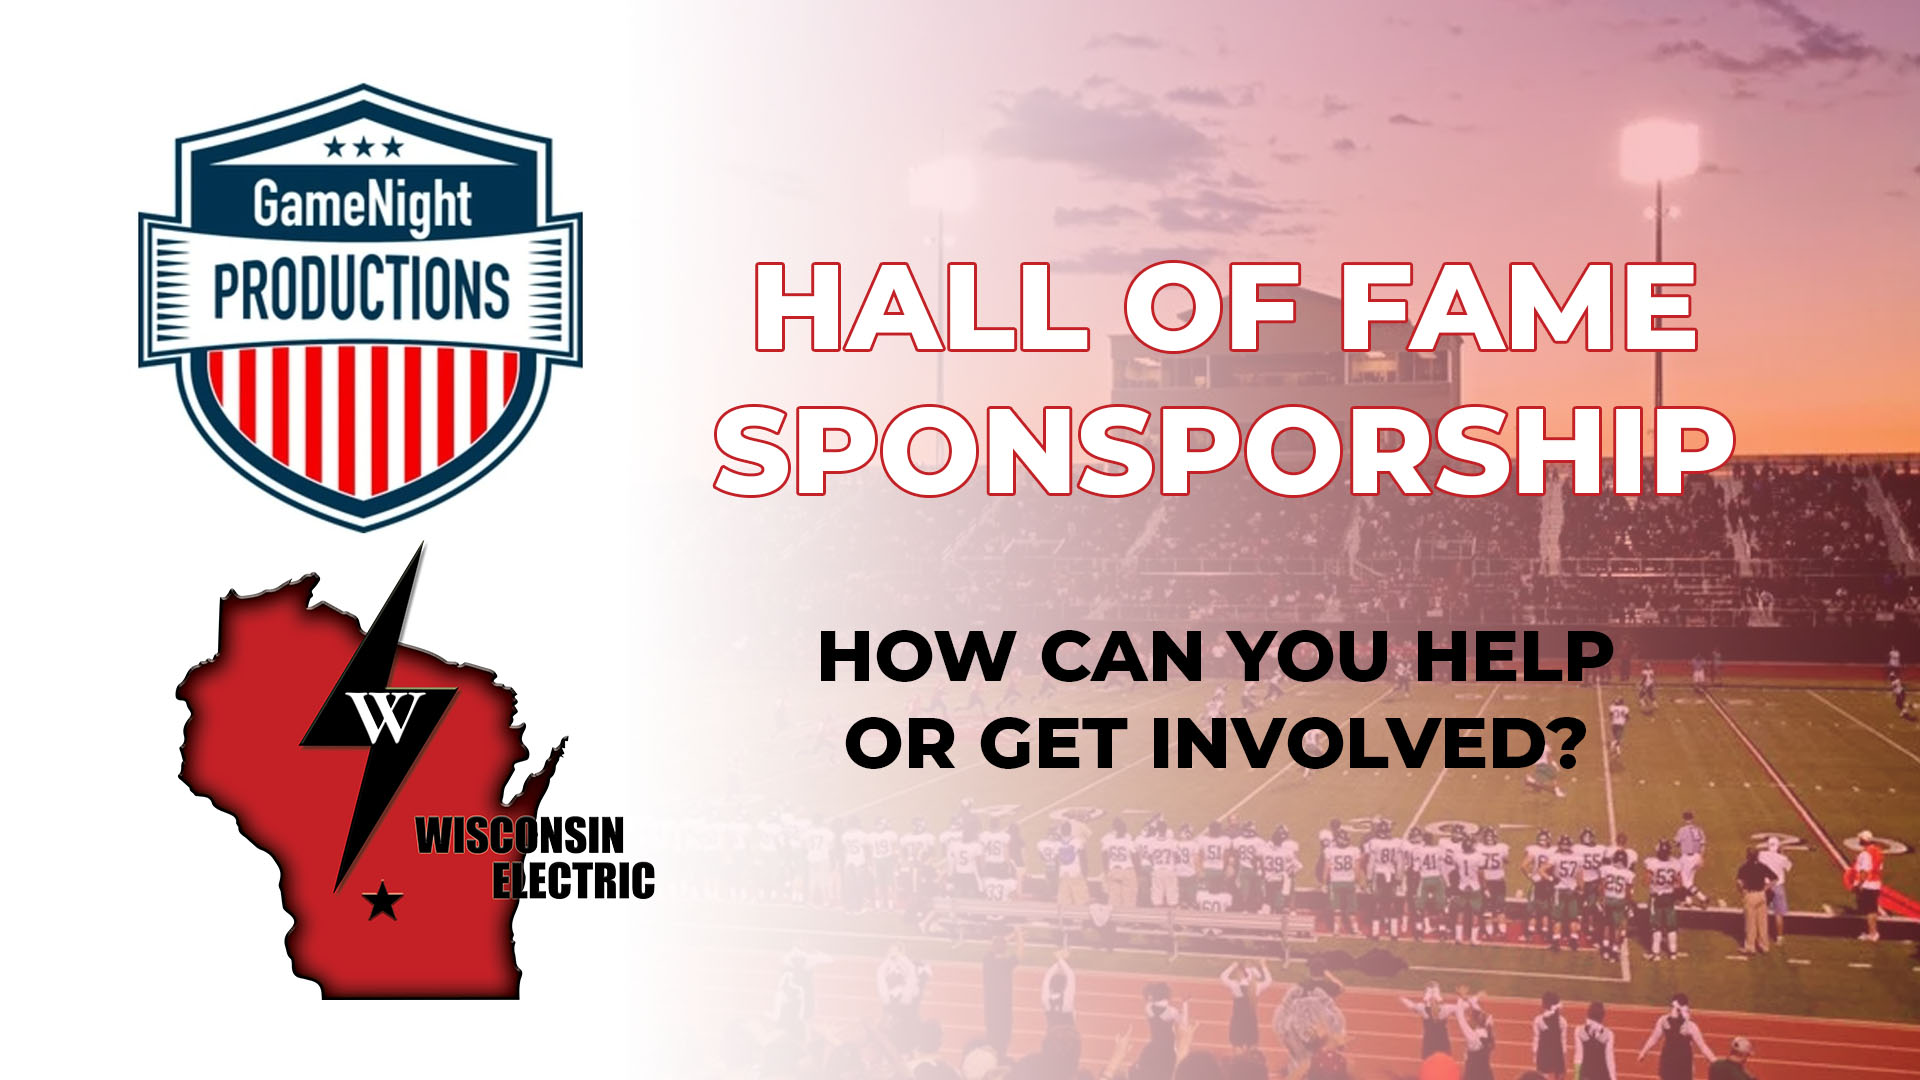 Hall of Fame Sponsorship - How Can You Get Involved